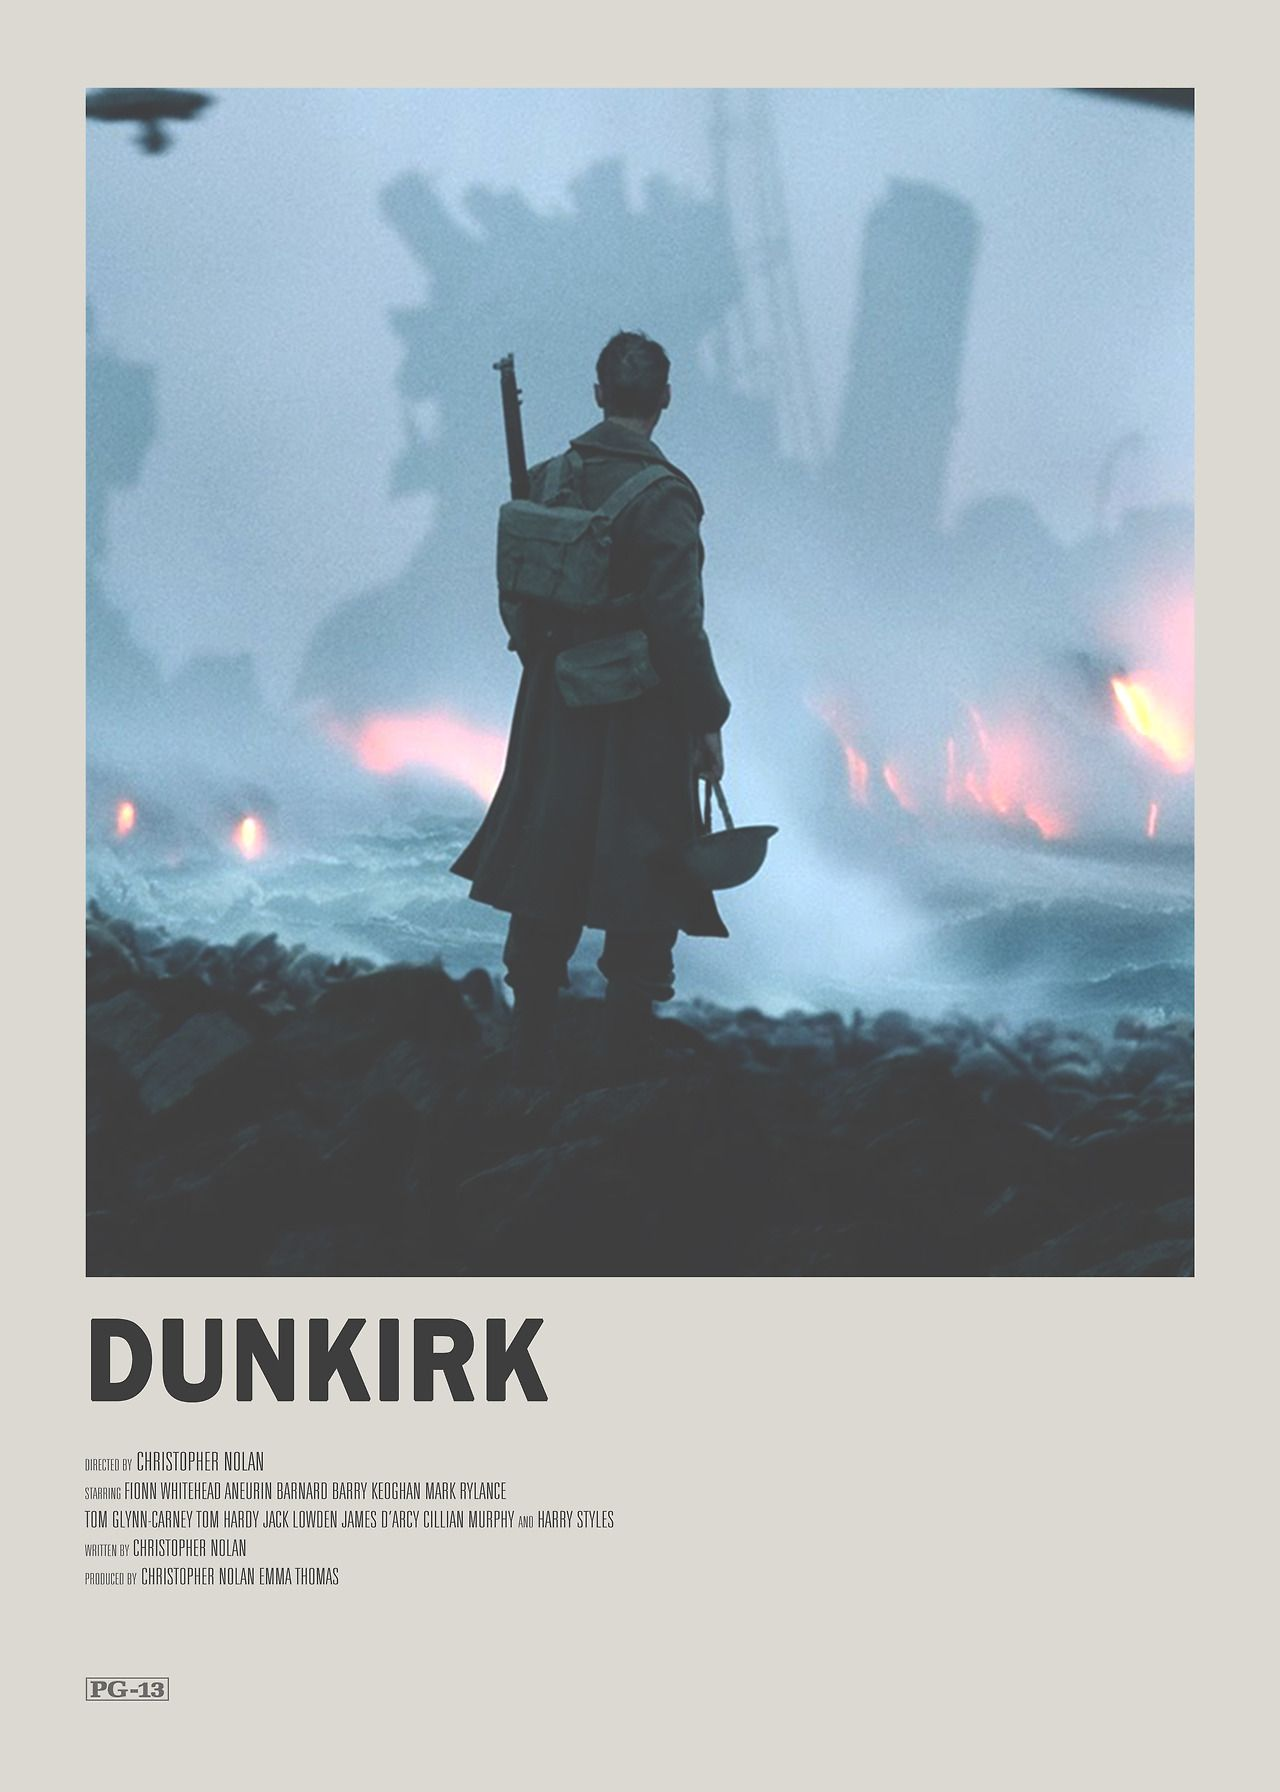 Dunkirk Minimal Movie Poster My Favourite Films And Books - Popular movie posters get redesigned with a beautifully minimal twist